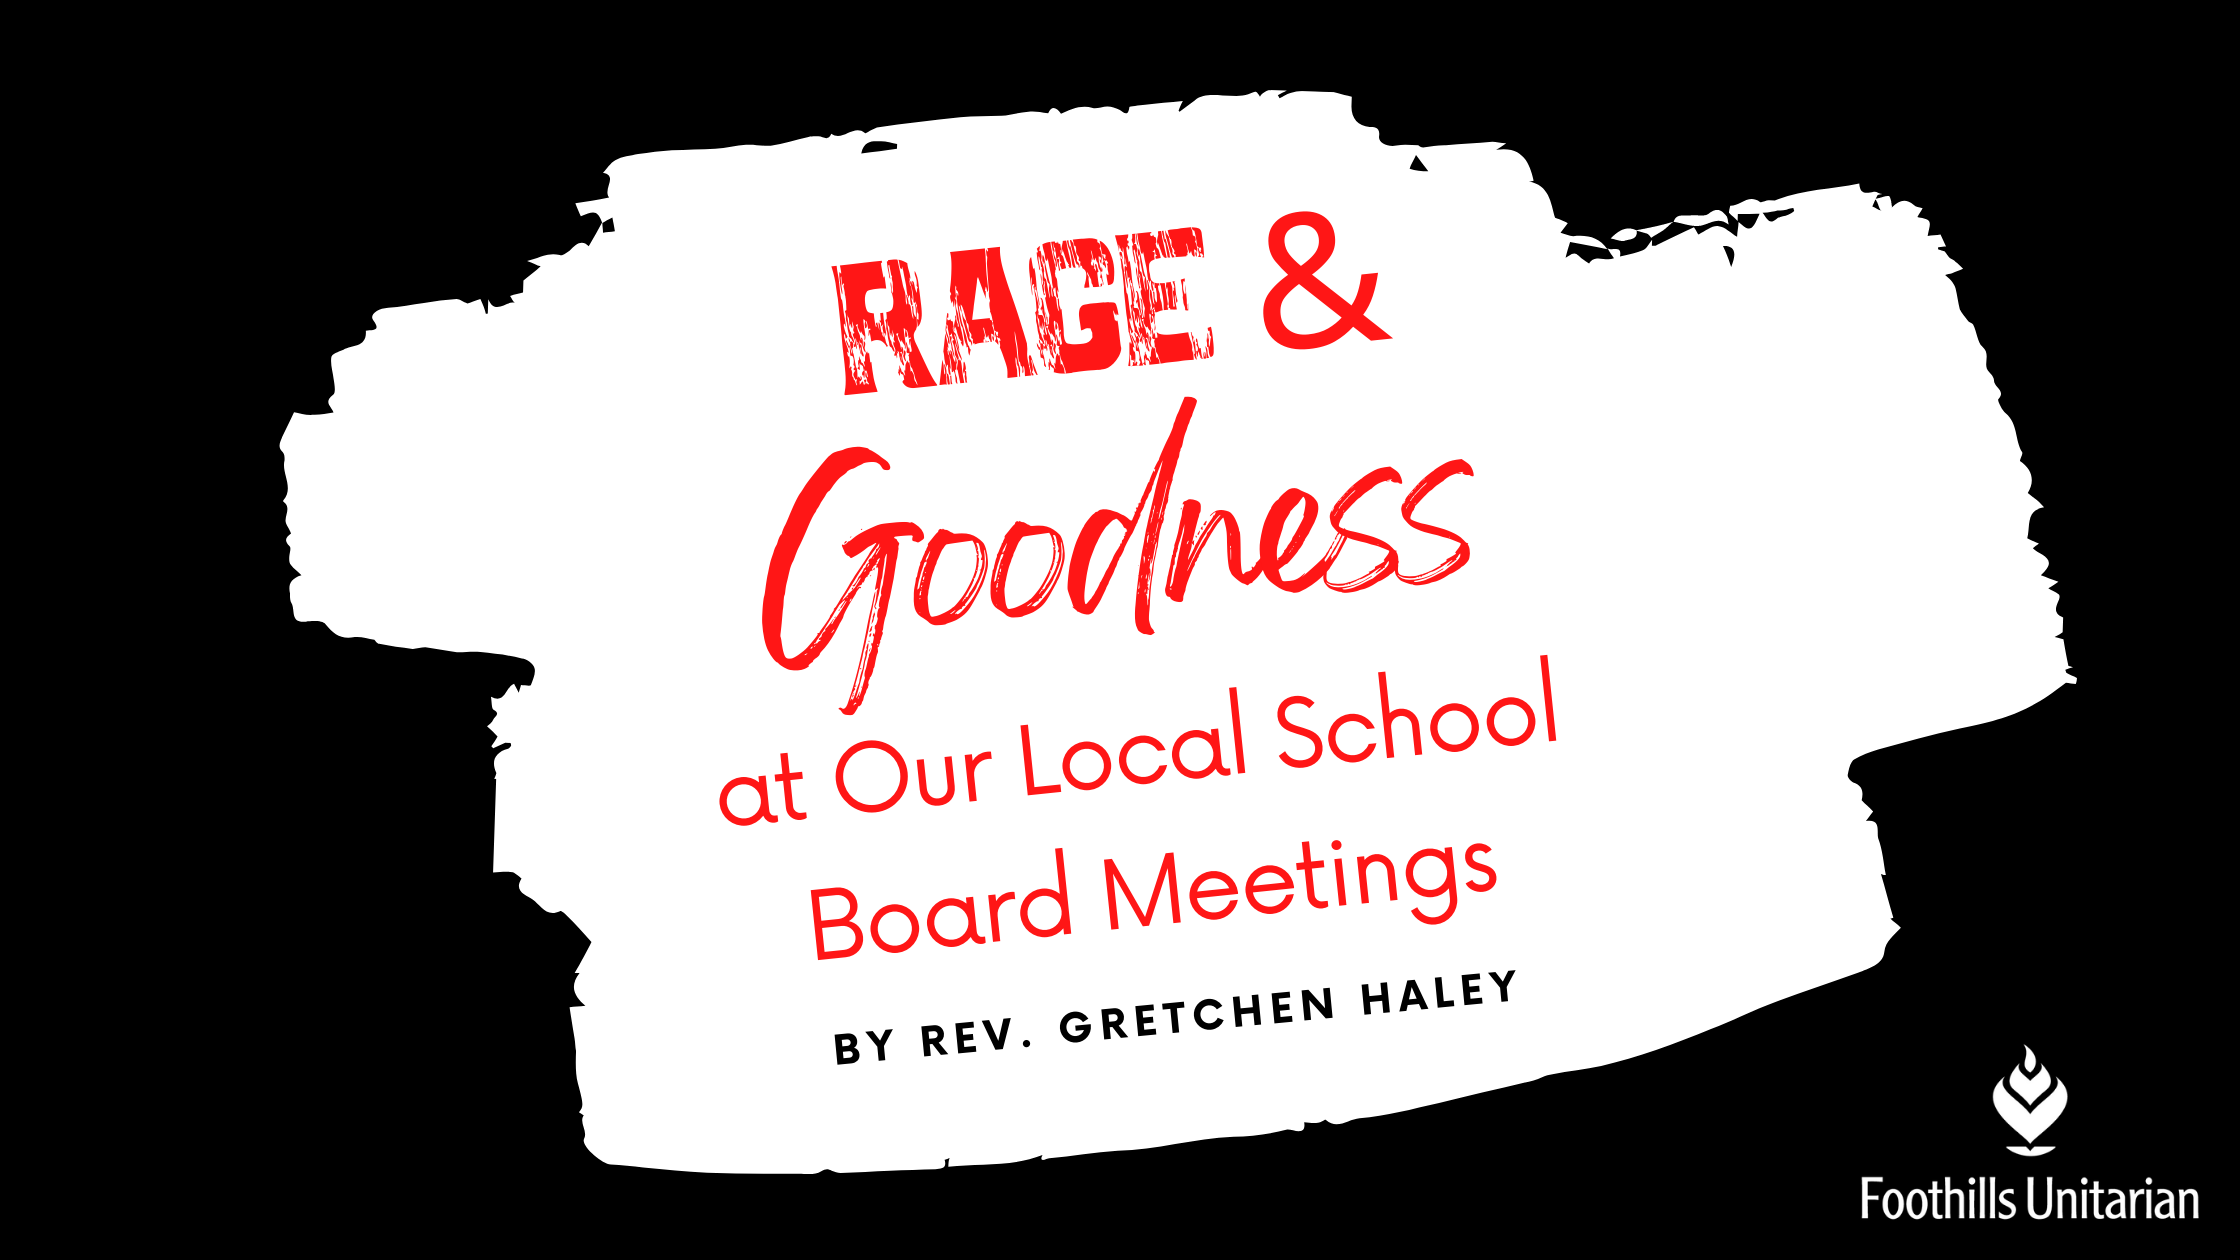 Rage & Goodness at Our Local School Board Meetings